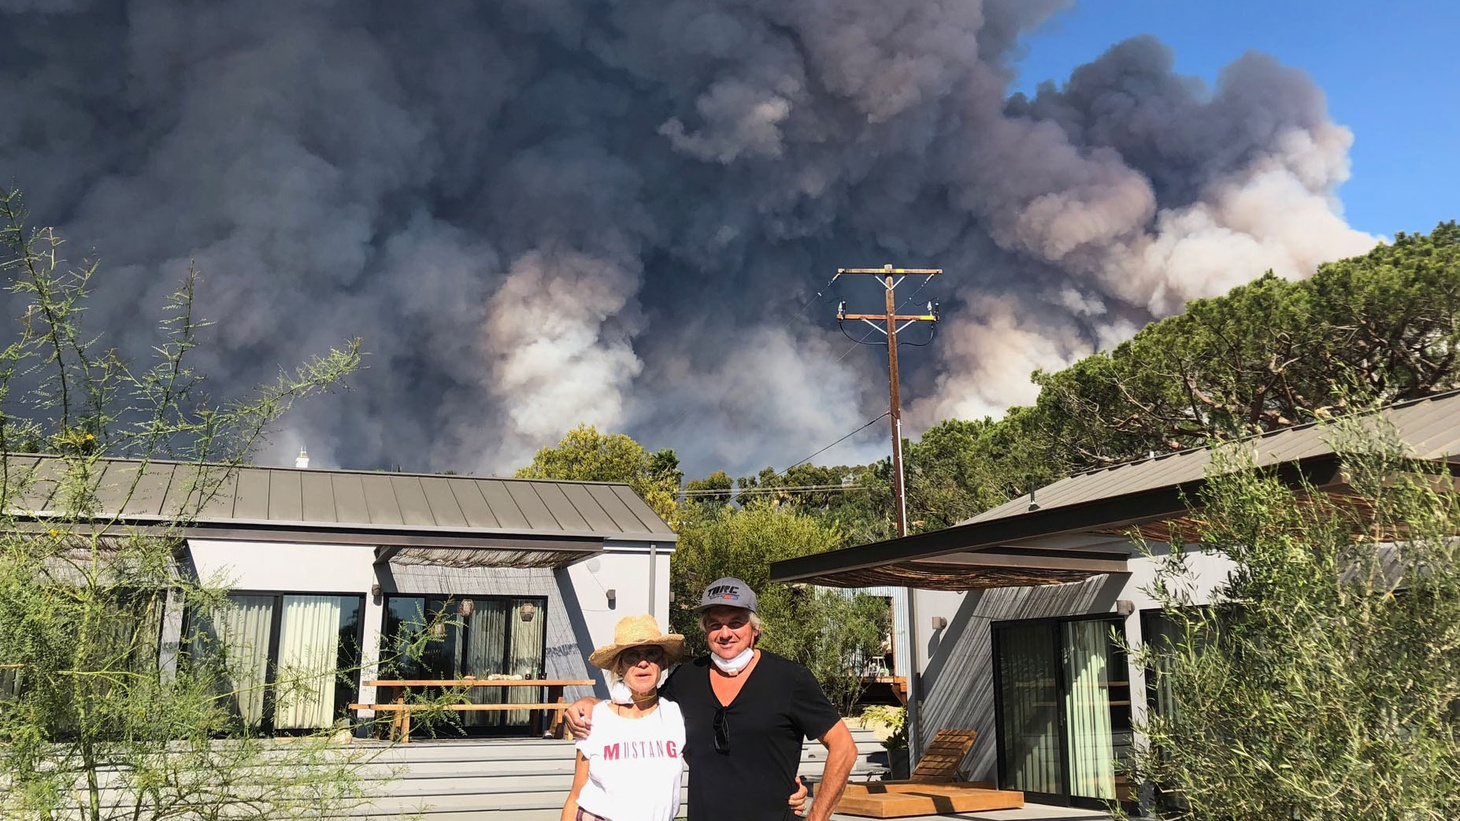 The Woolsey Fire barrels towards the home of Claudia and Rob Taylor. This newly completed guesthouse survived; it has a metal roof, concrete structure and no eaves, all recommended in fire zones. Will new structures in Malibu follow suit?